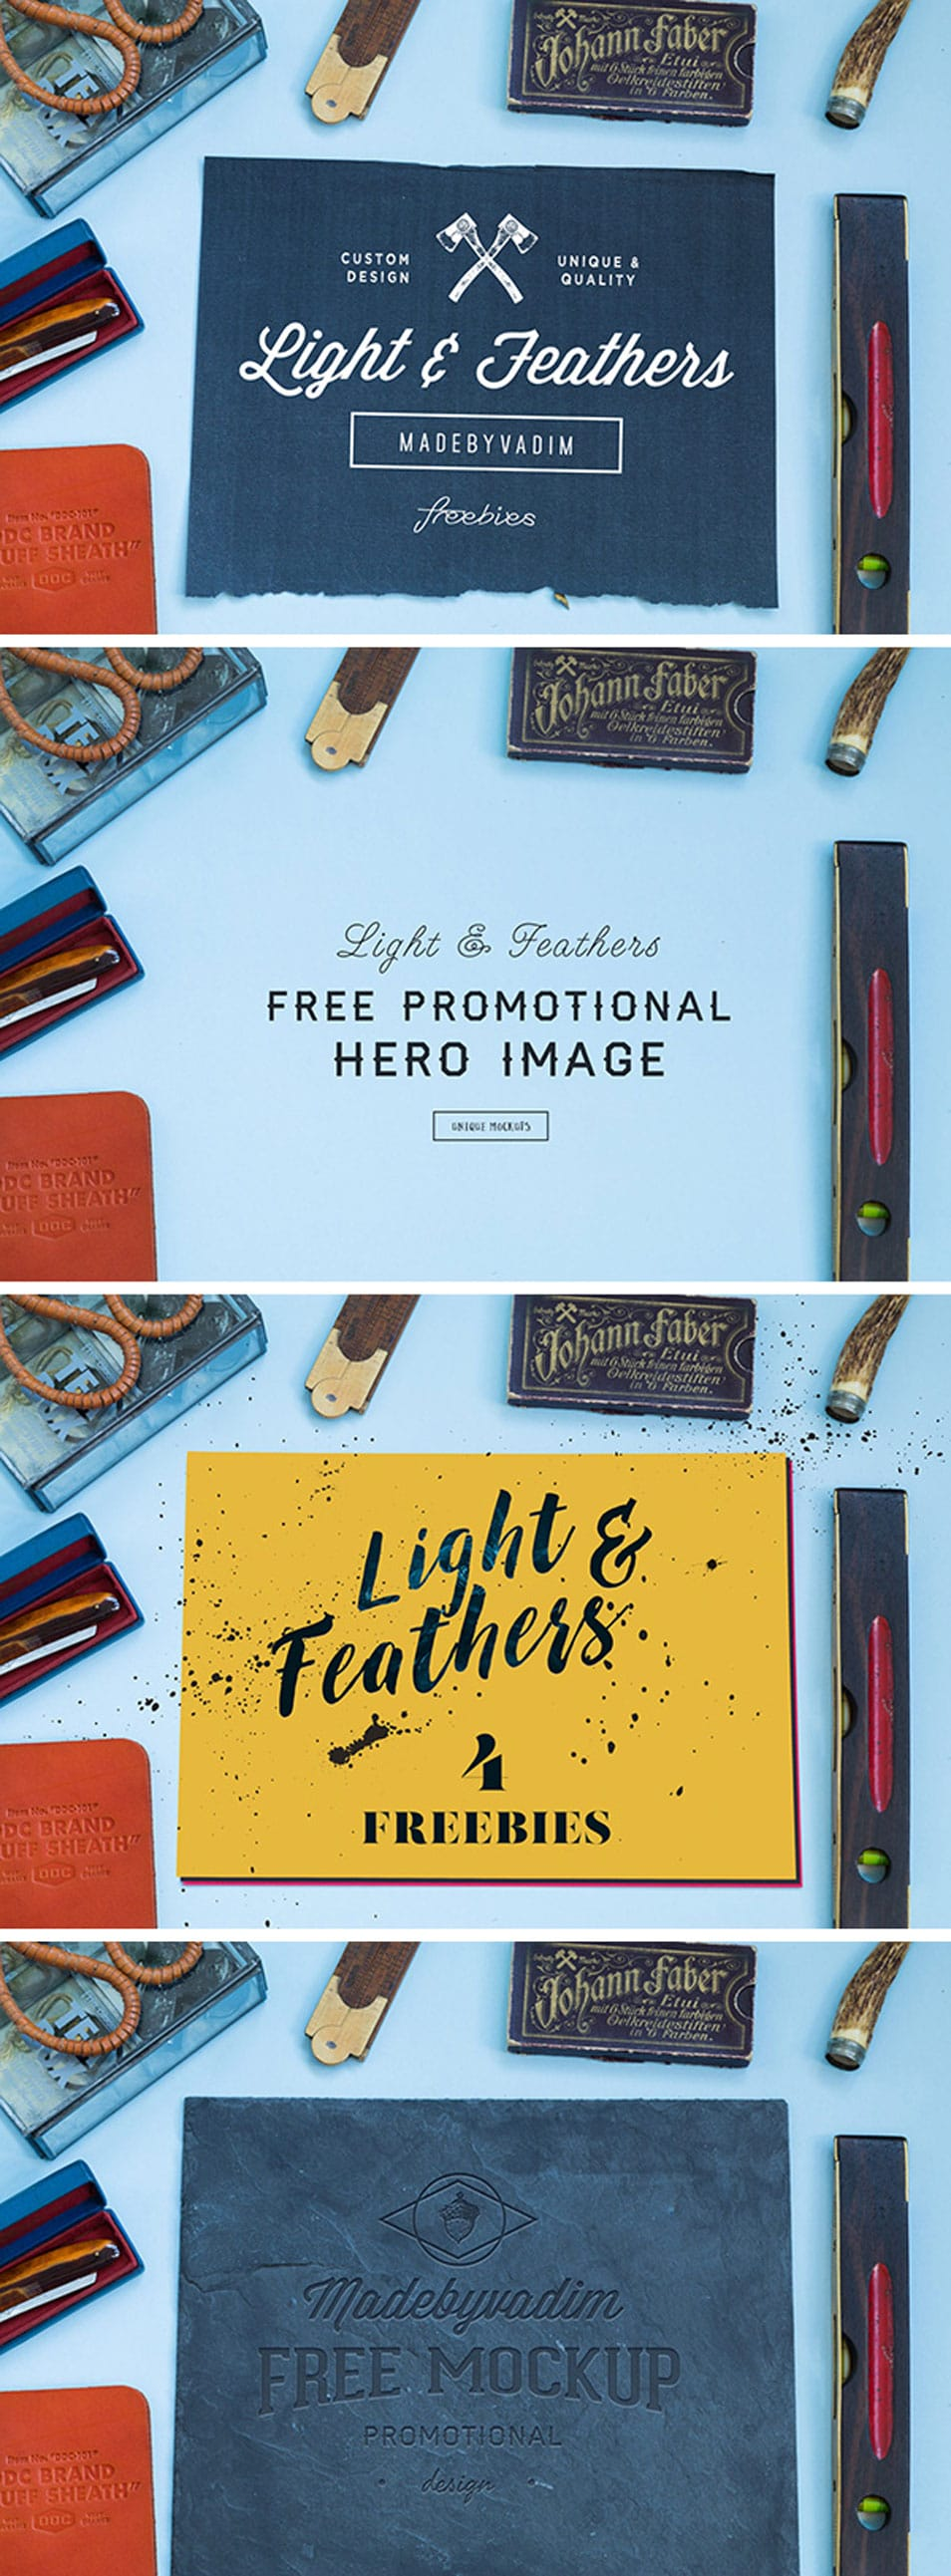 Light & Feather: 4 Free MockUps